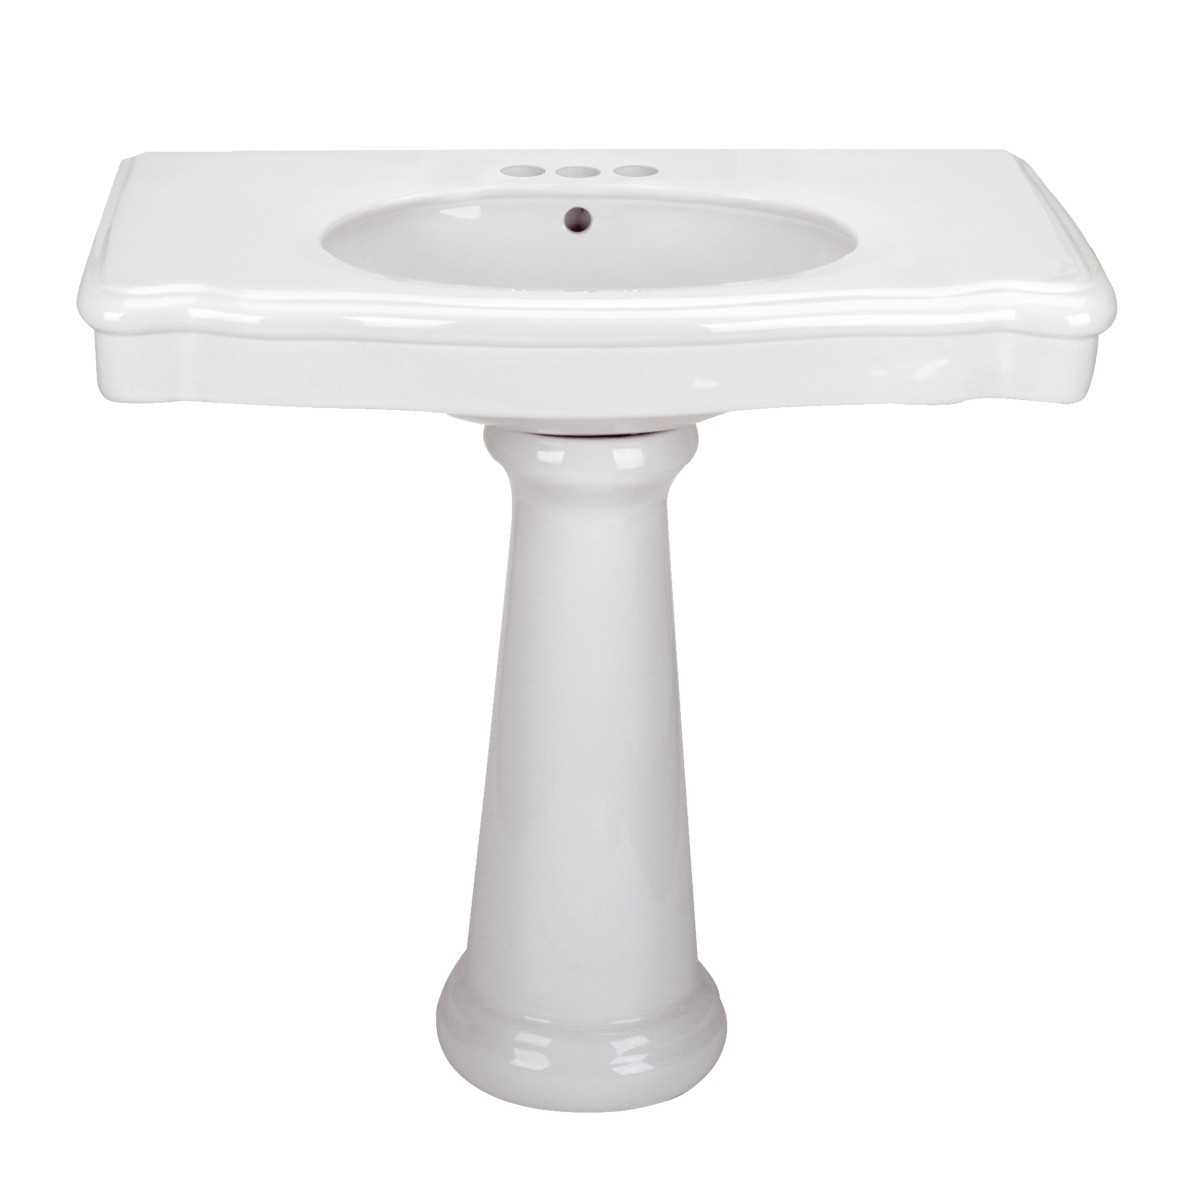 Renovators Supply White Darbyshire Pedestal Sink with 4 Faucet, Drain and PTrap Rectangle Pedestal Sink Modern Bathroom Pedestal Sink Classic Bathroom Sinks